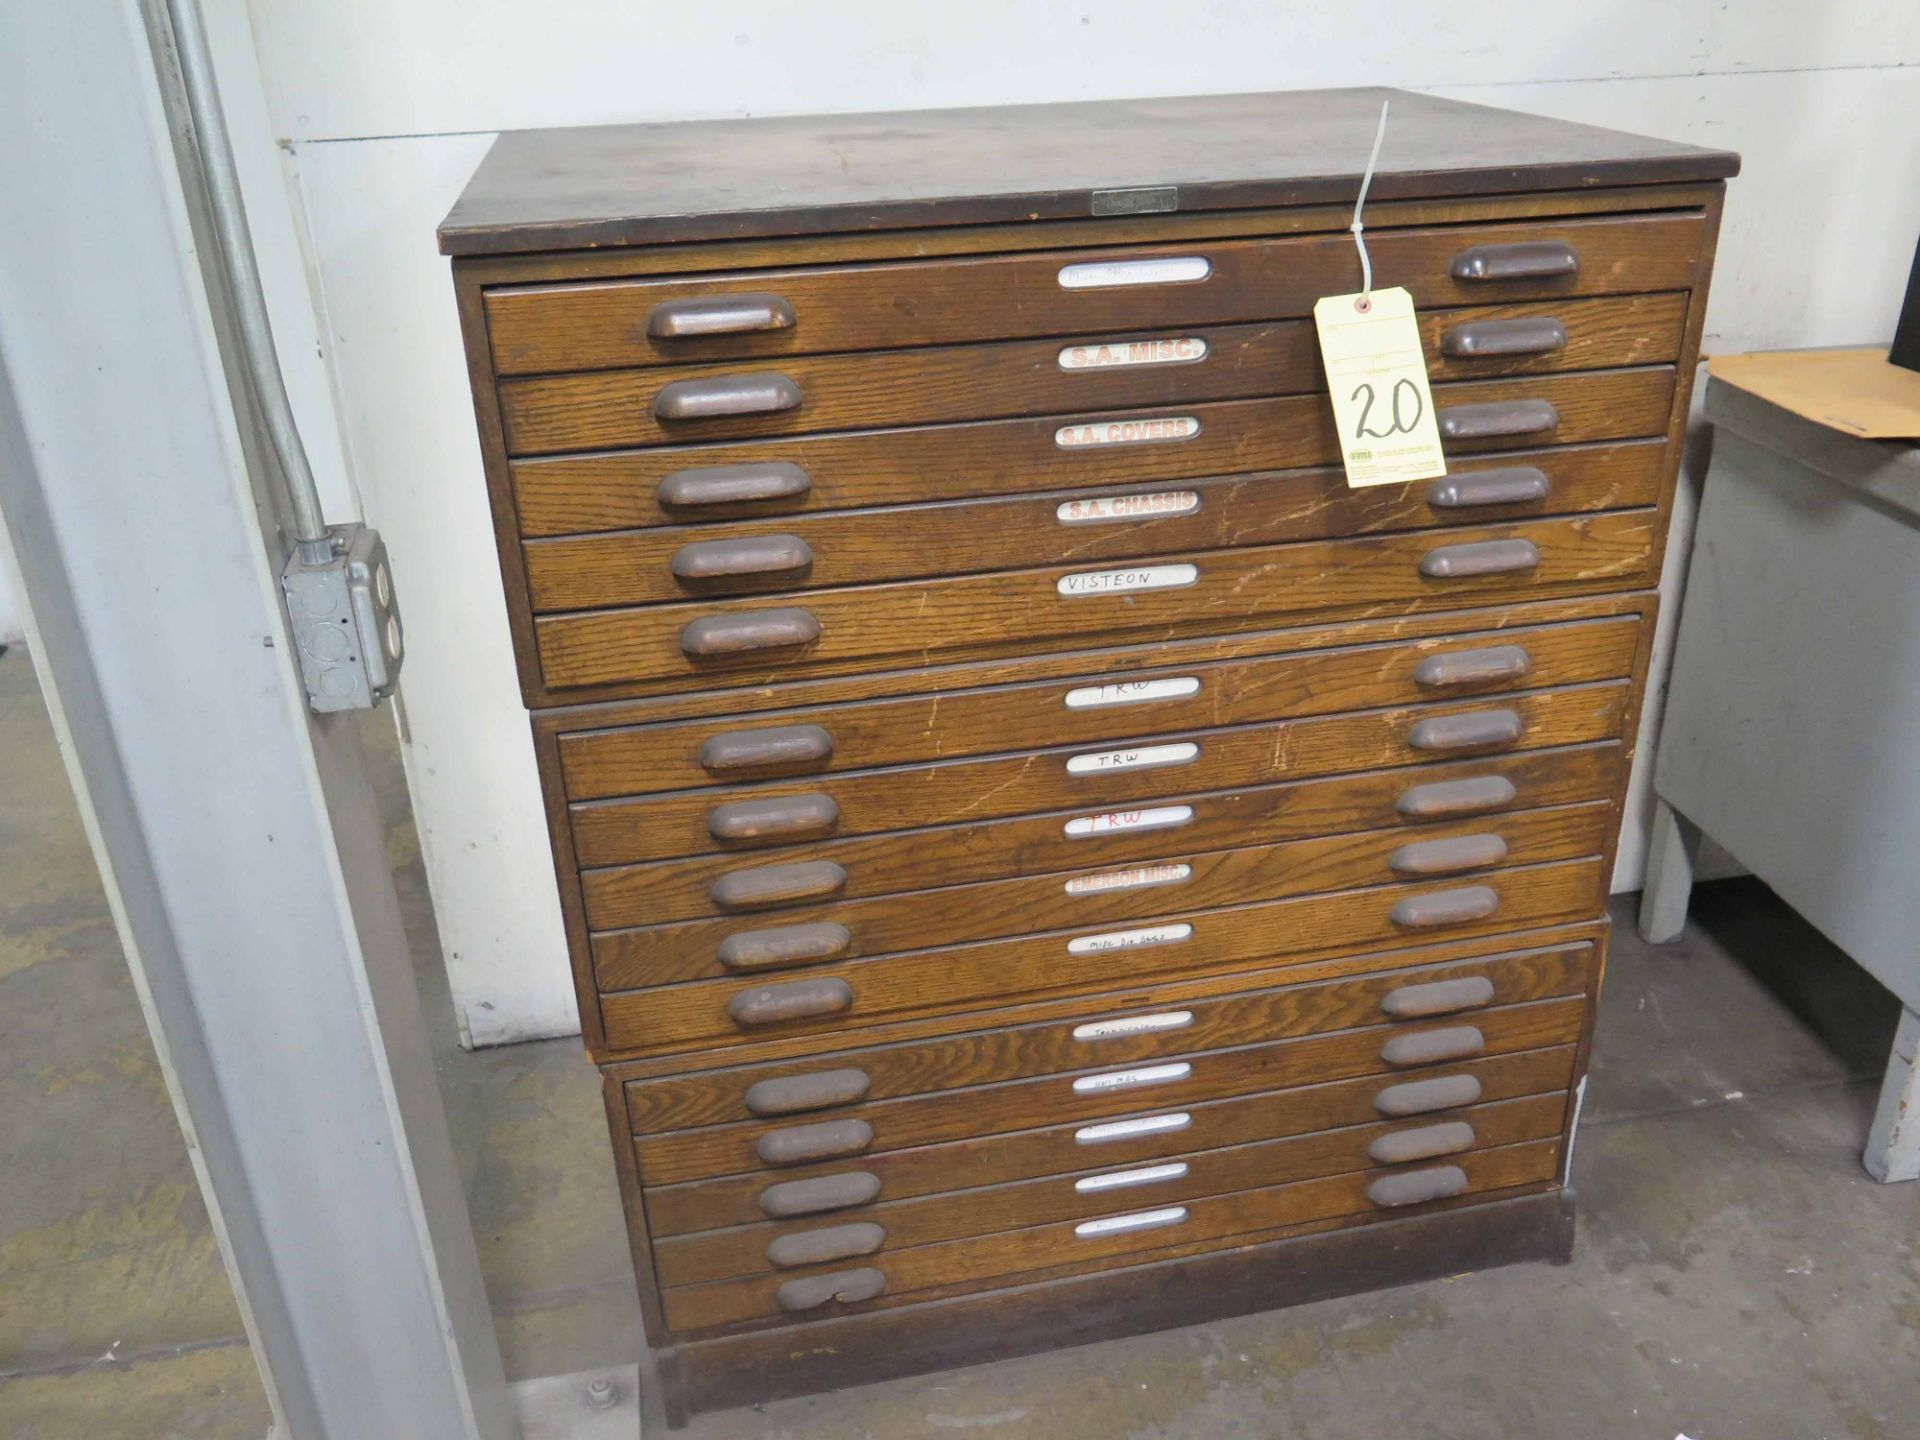 Lot 20 - BLUEPRINT CABINET, wooden, w/(15) drawers